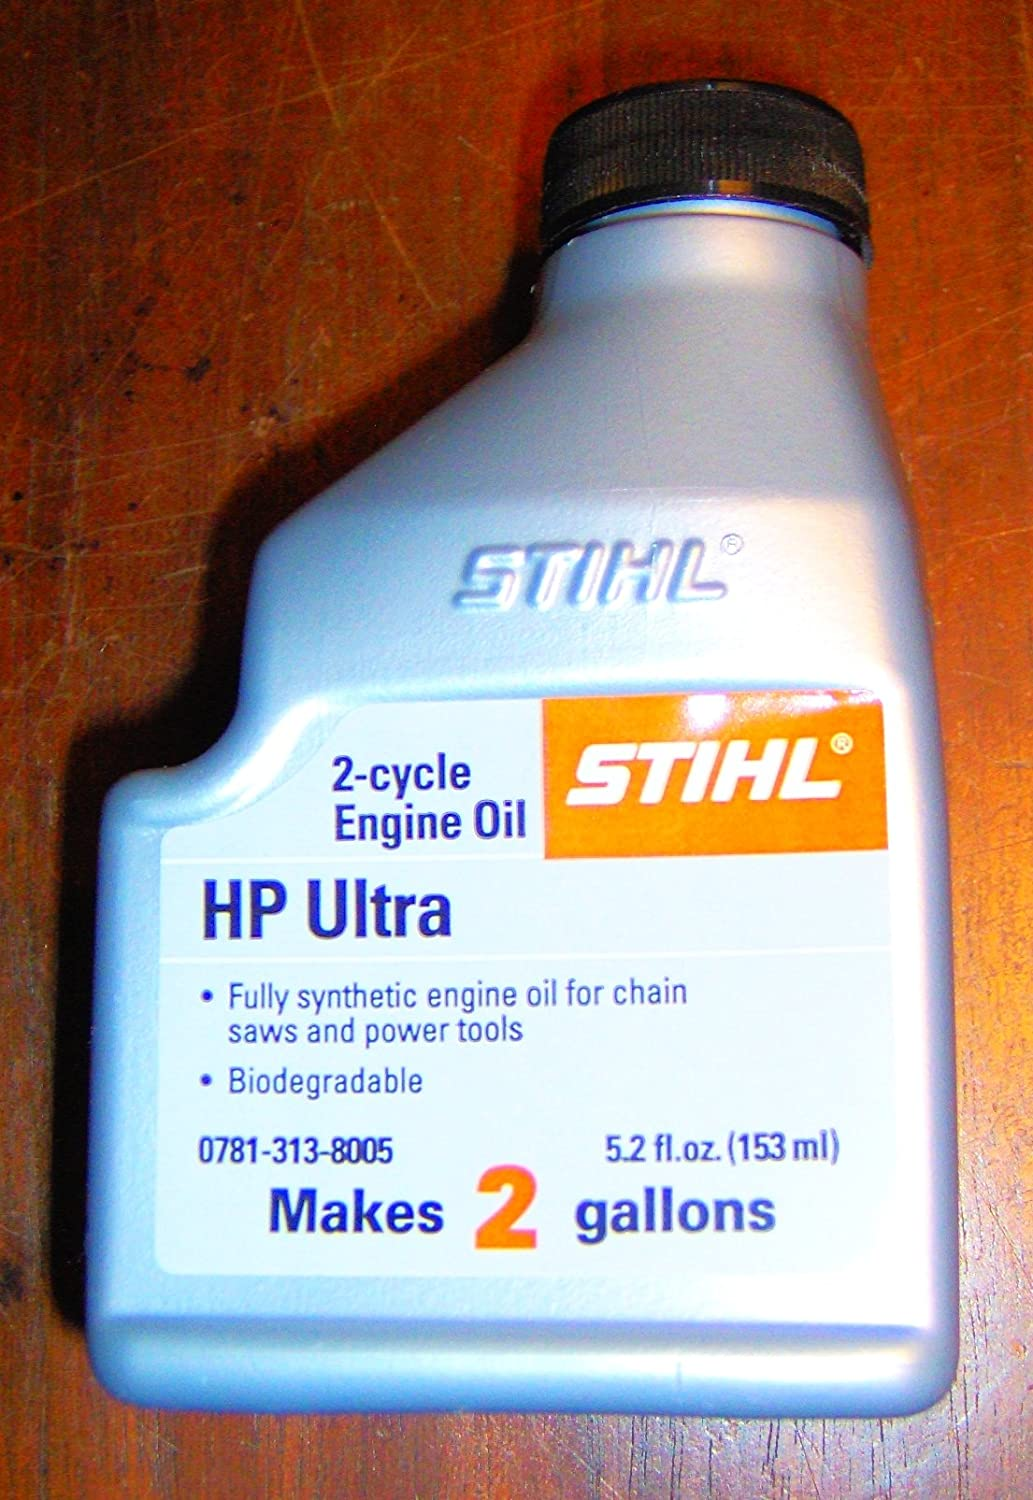 Stihl HP Ultra 2 Cycle Engine Synthetic Oil 2 Gal Mix - 1 Bottle